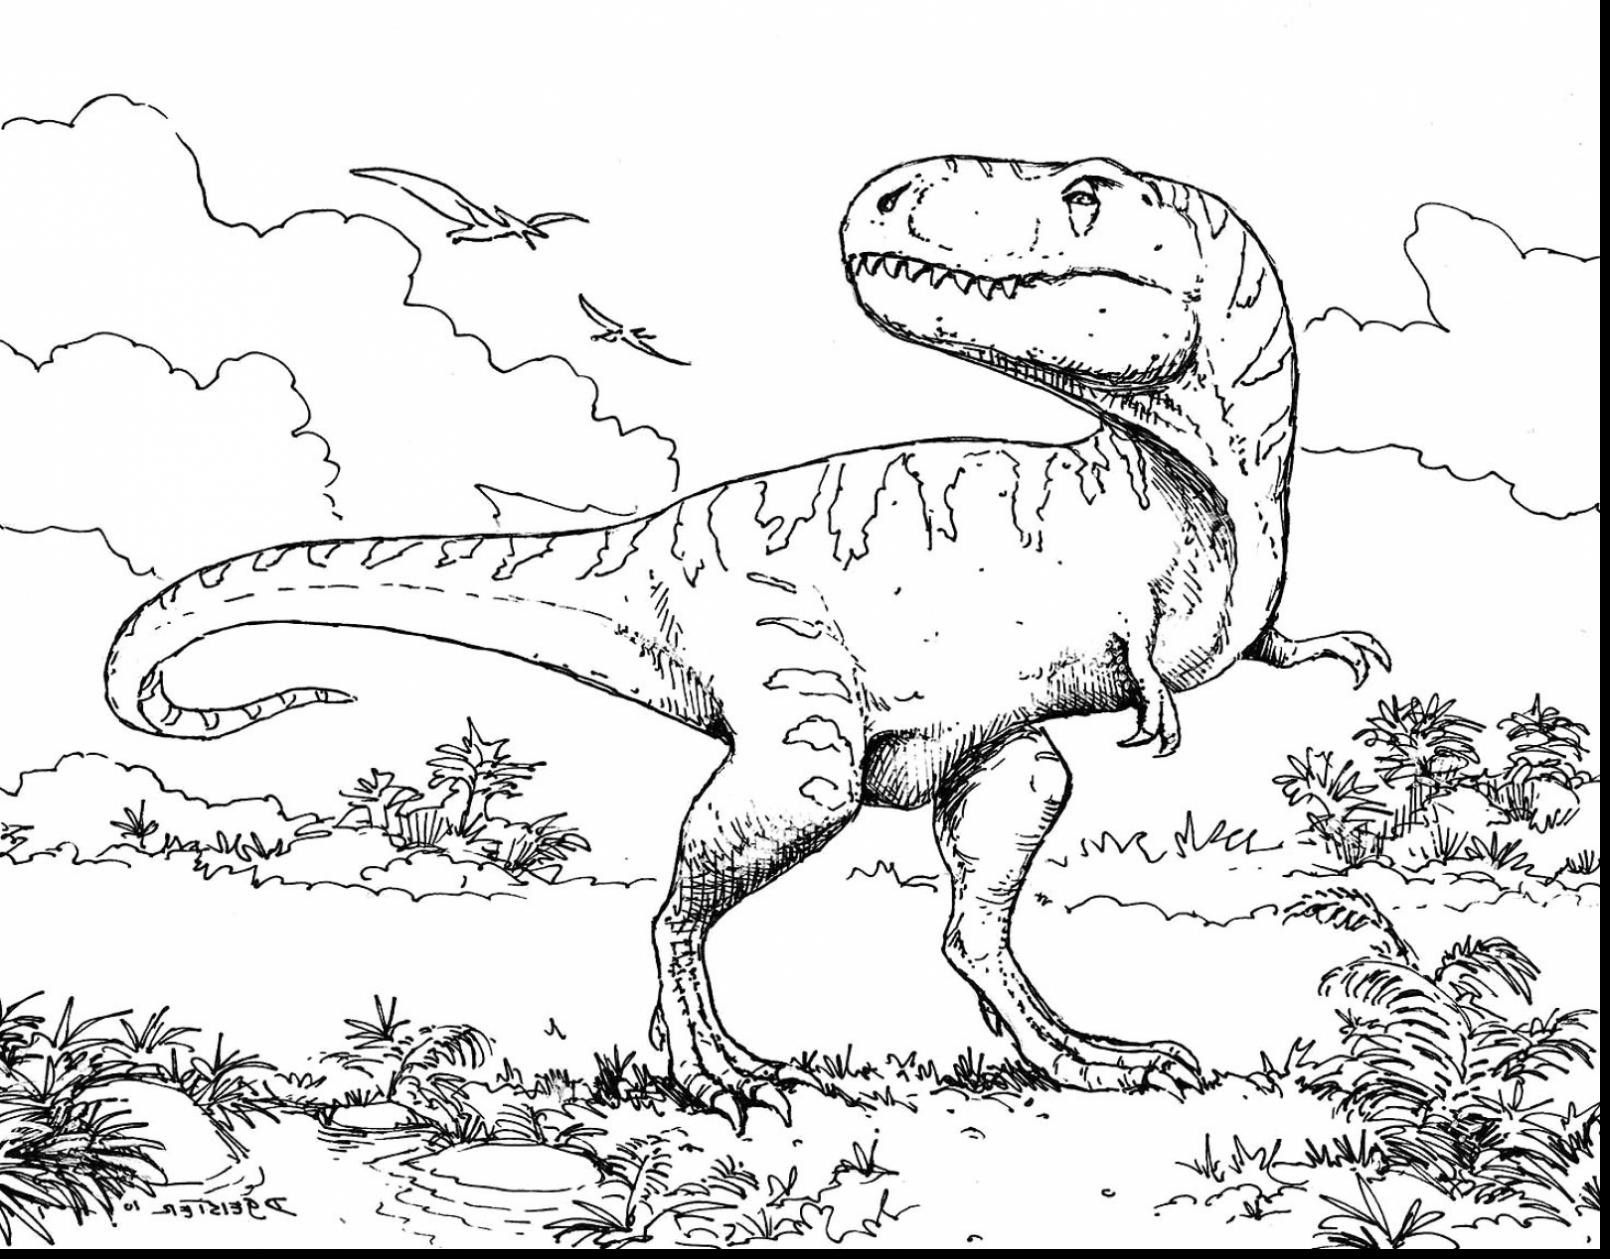 T Rex Dinosaur Coloring Pages Dinosaur Coloring Pages Dinosaur